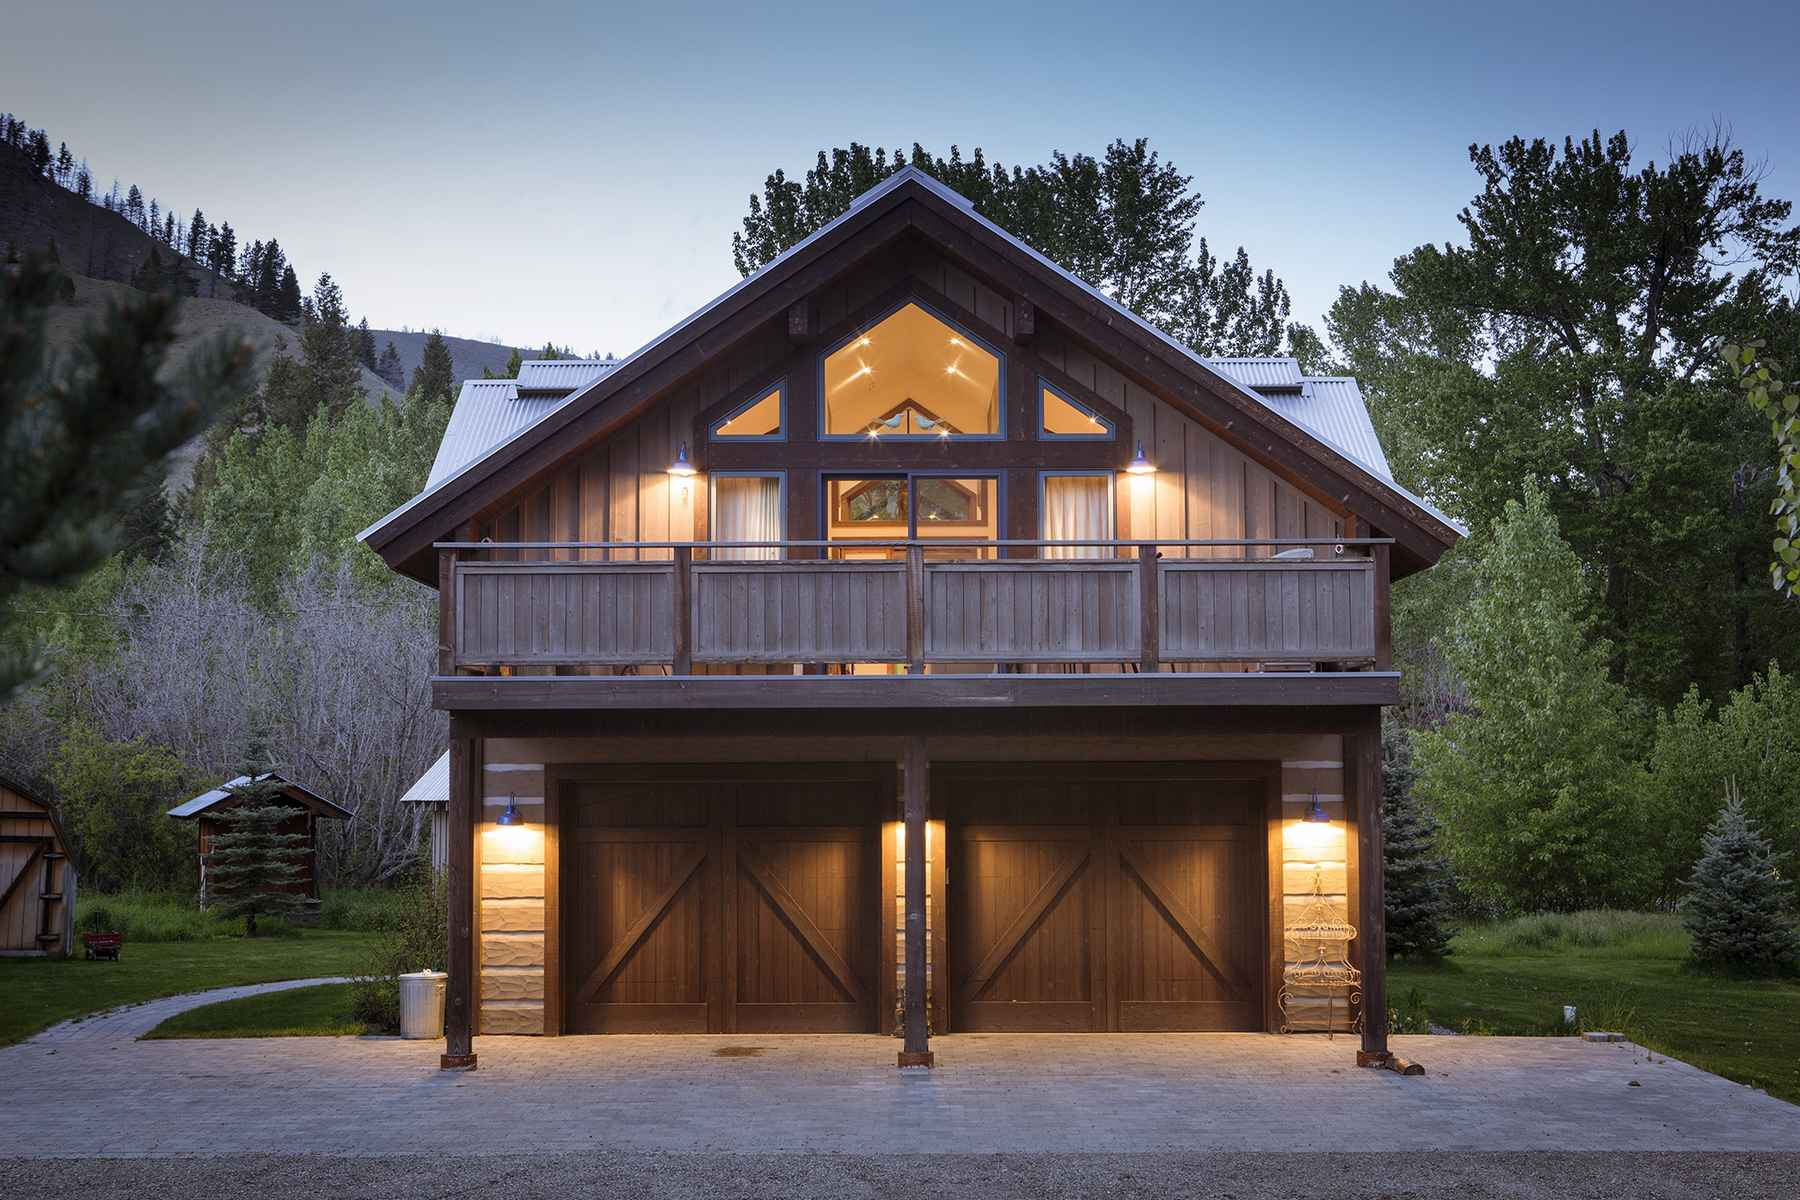 Additional photo for property listing at Riverfront Escape 106 Whipsaw Lane Ketchum, Idaho 83340 Estados Unidos